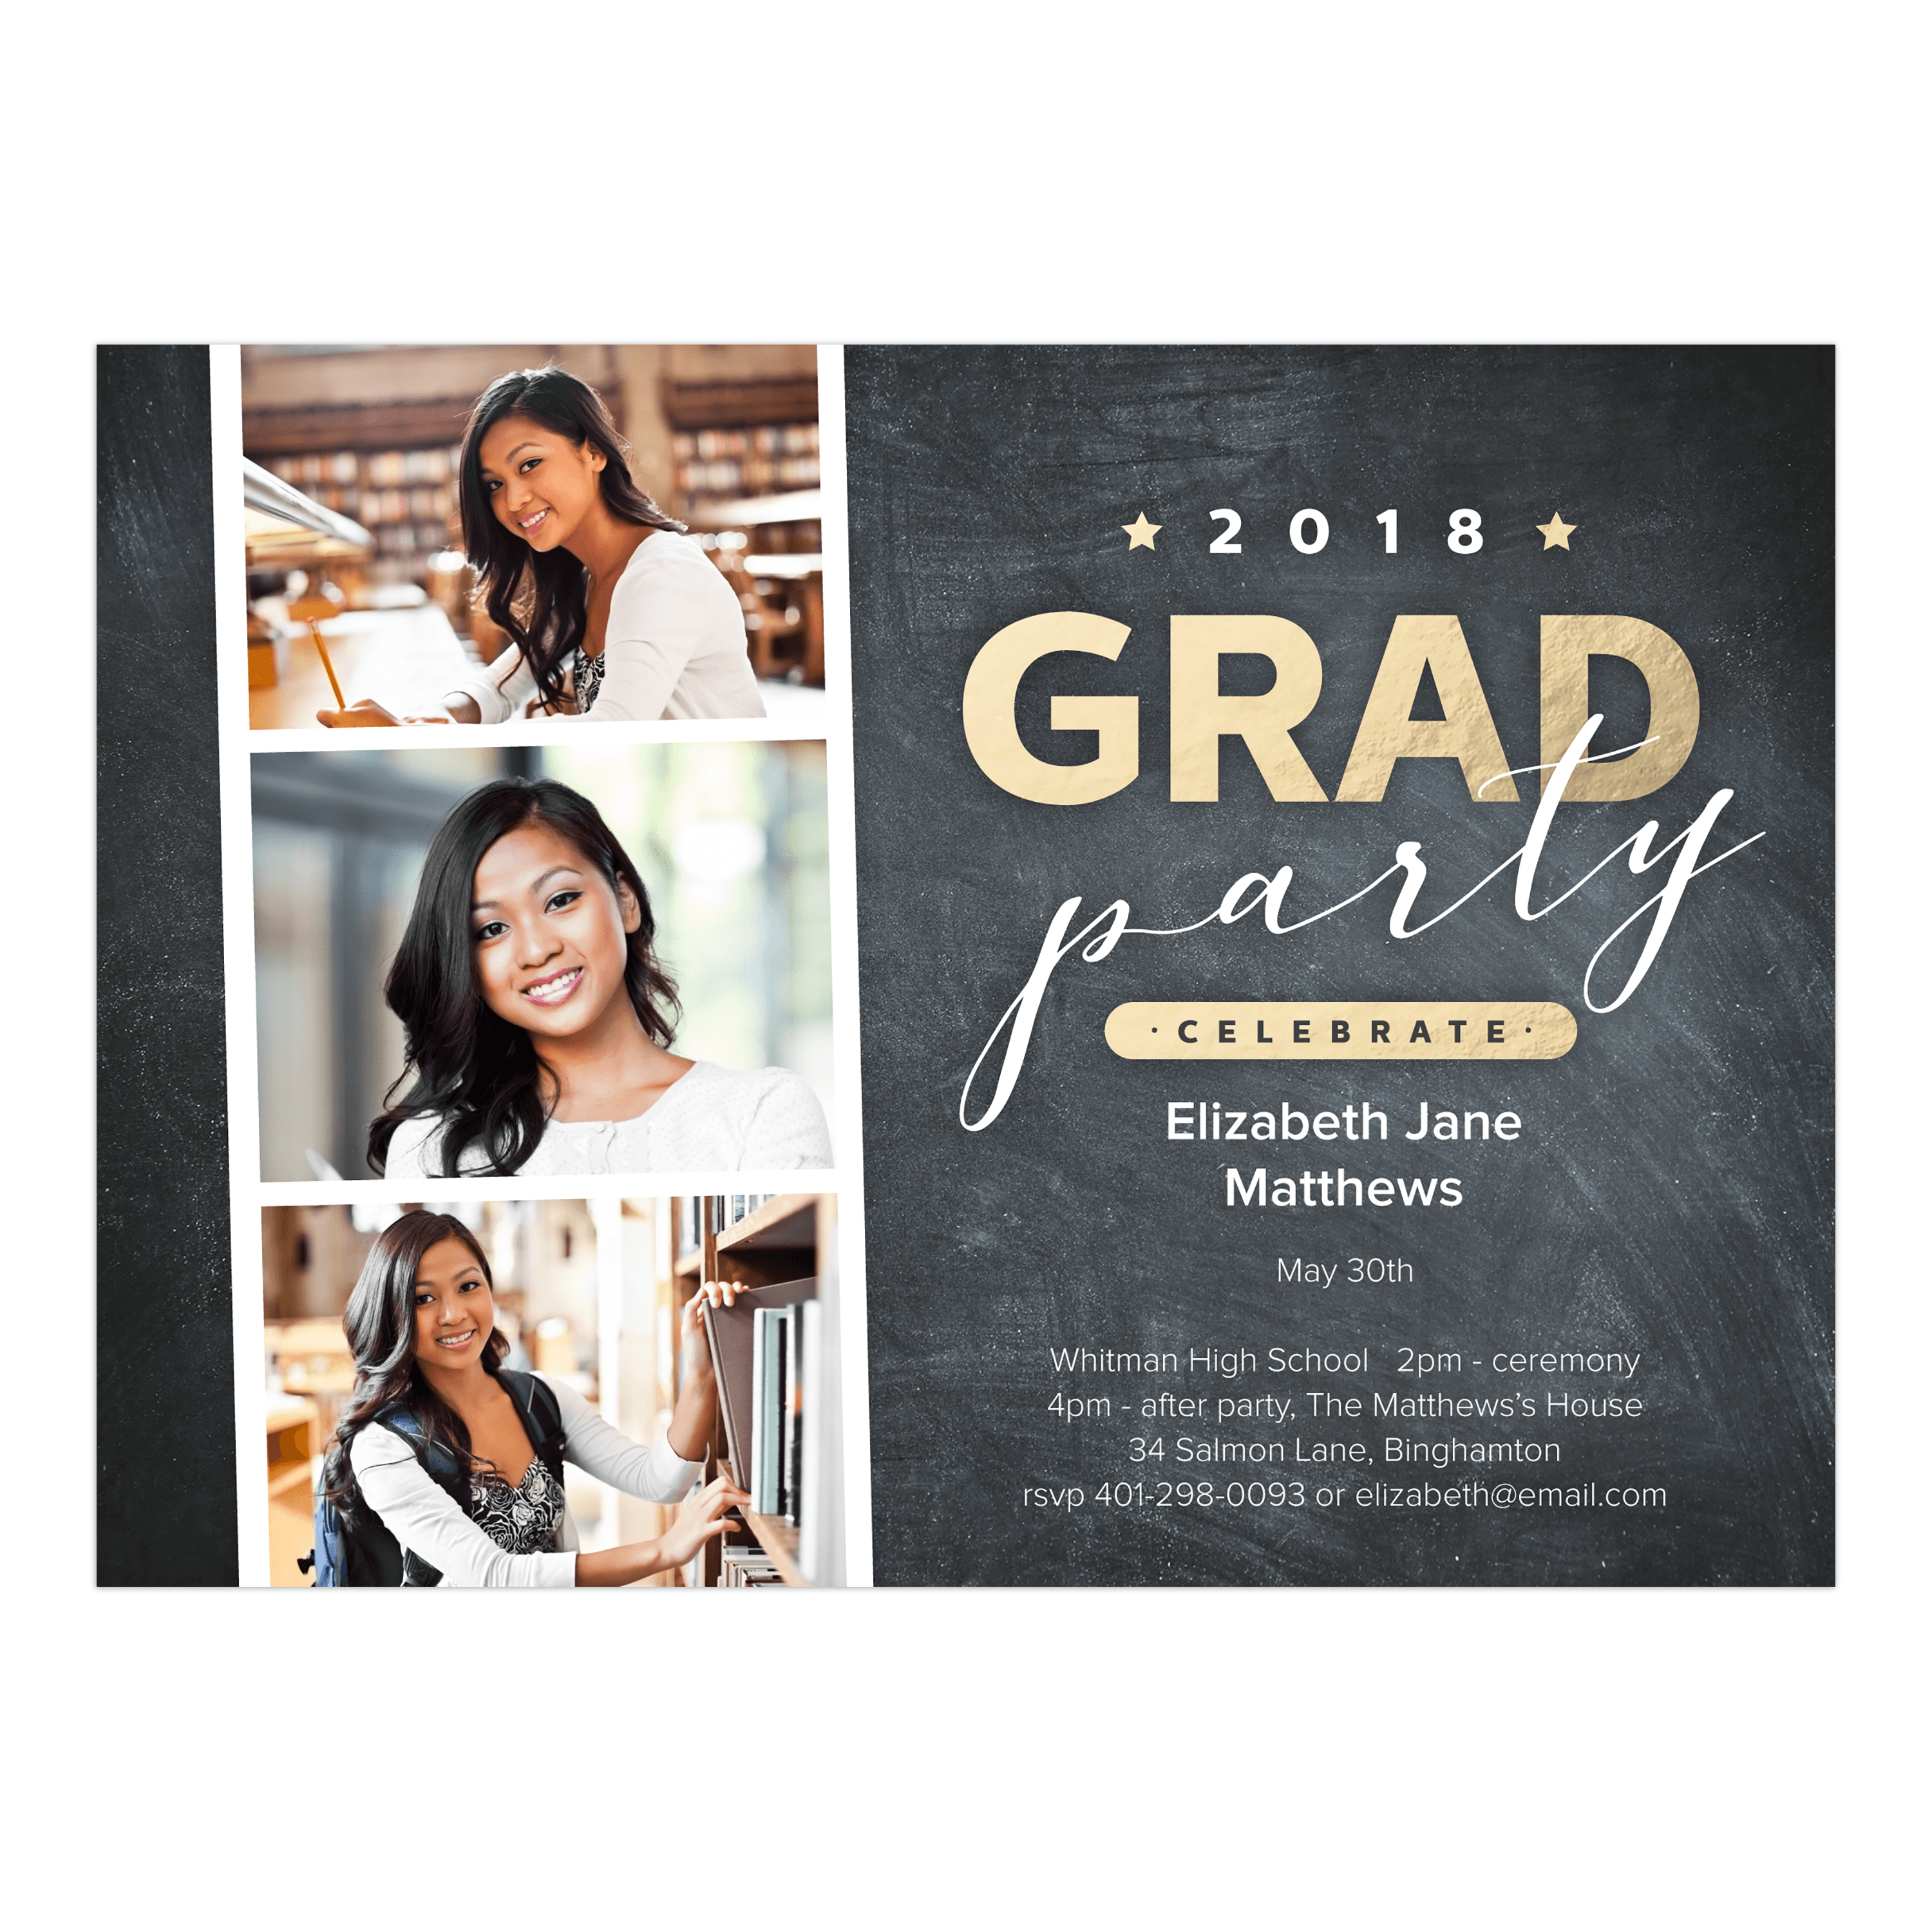 Personalized Graduation Invitation - Photostrip - 5 x 7 Flat